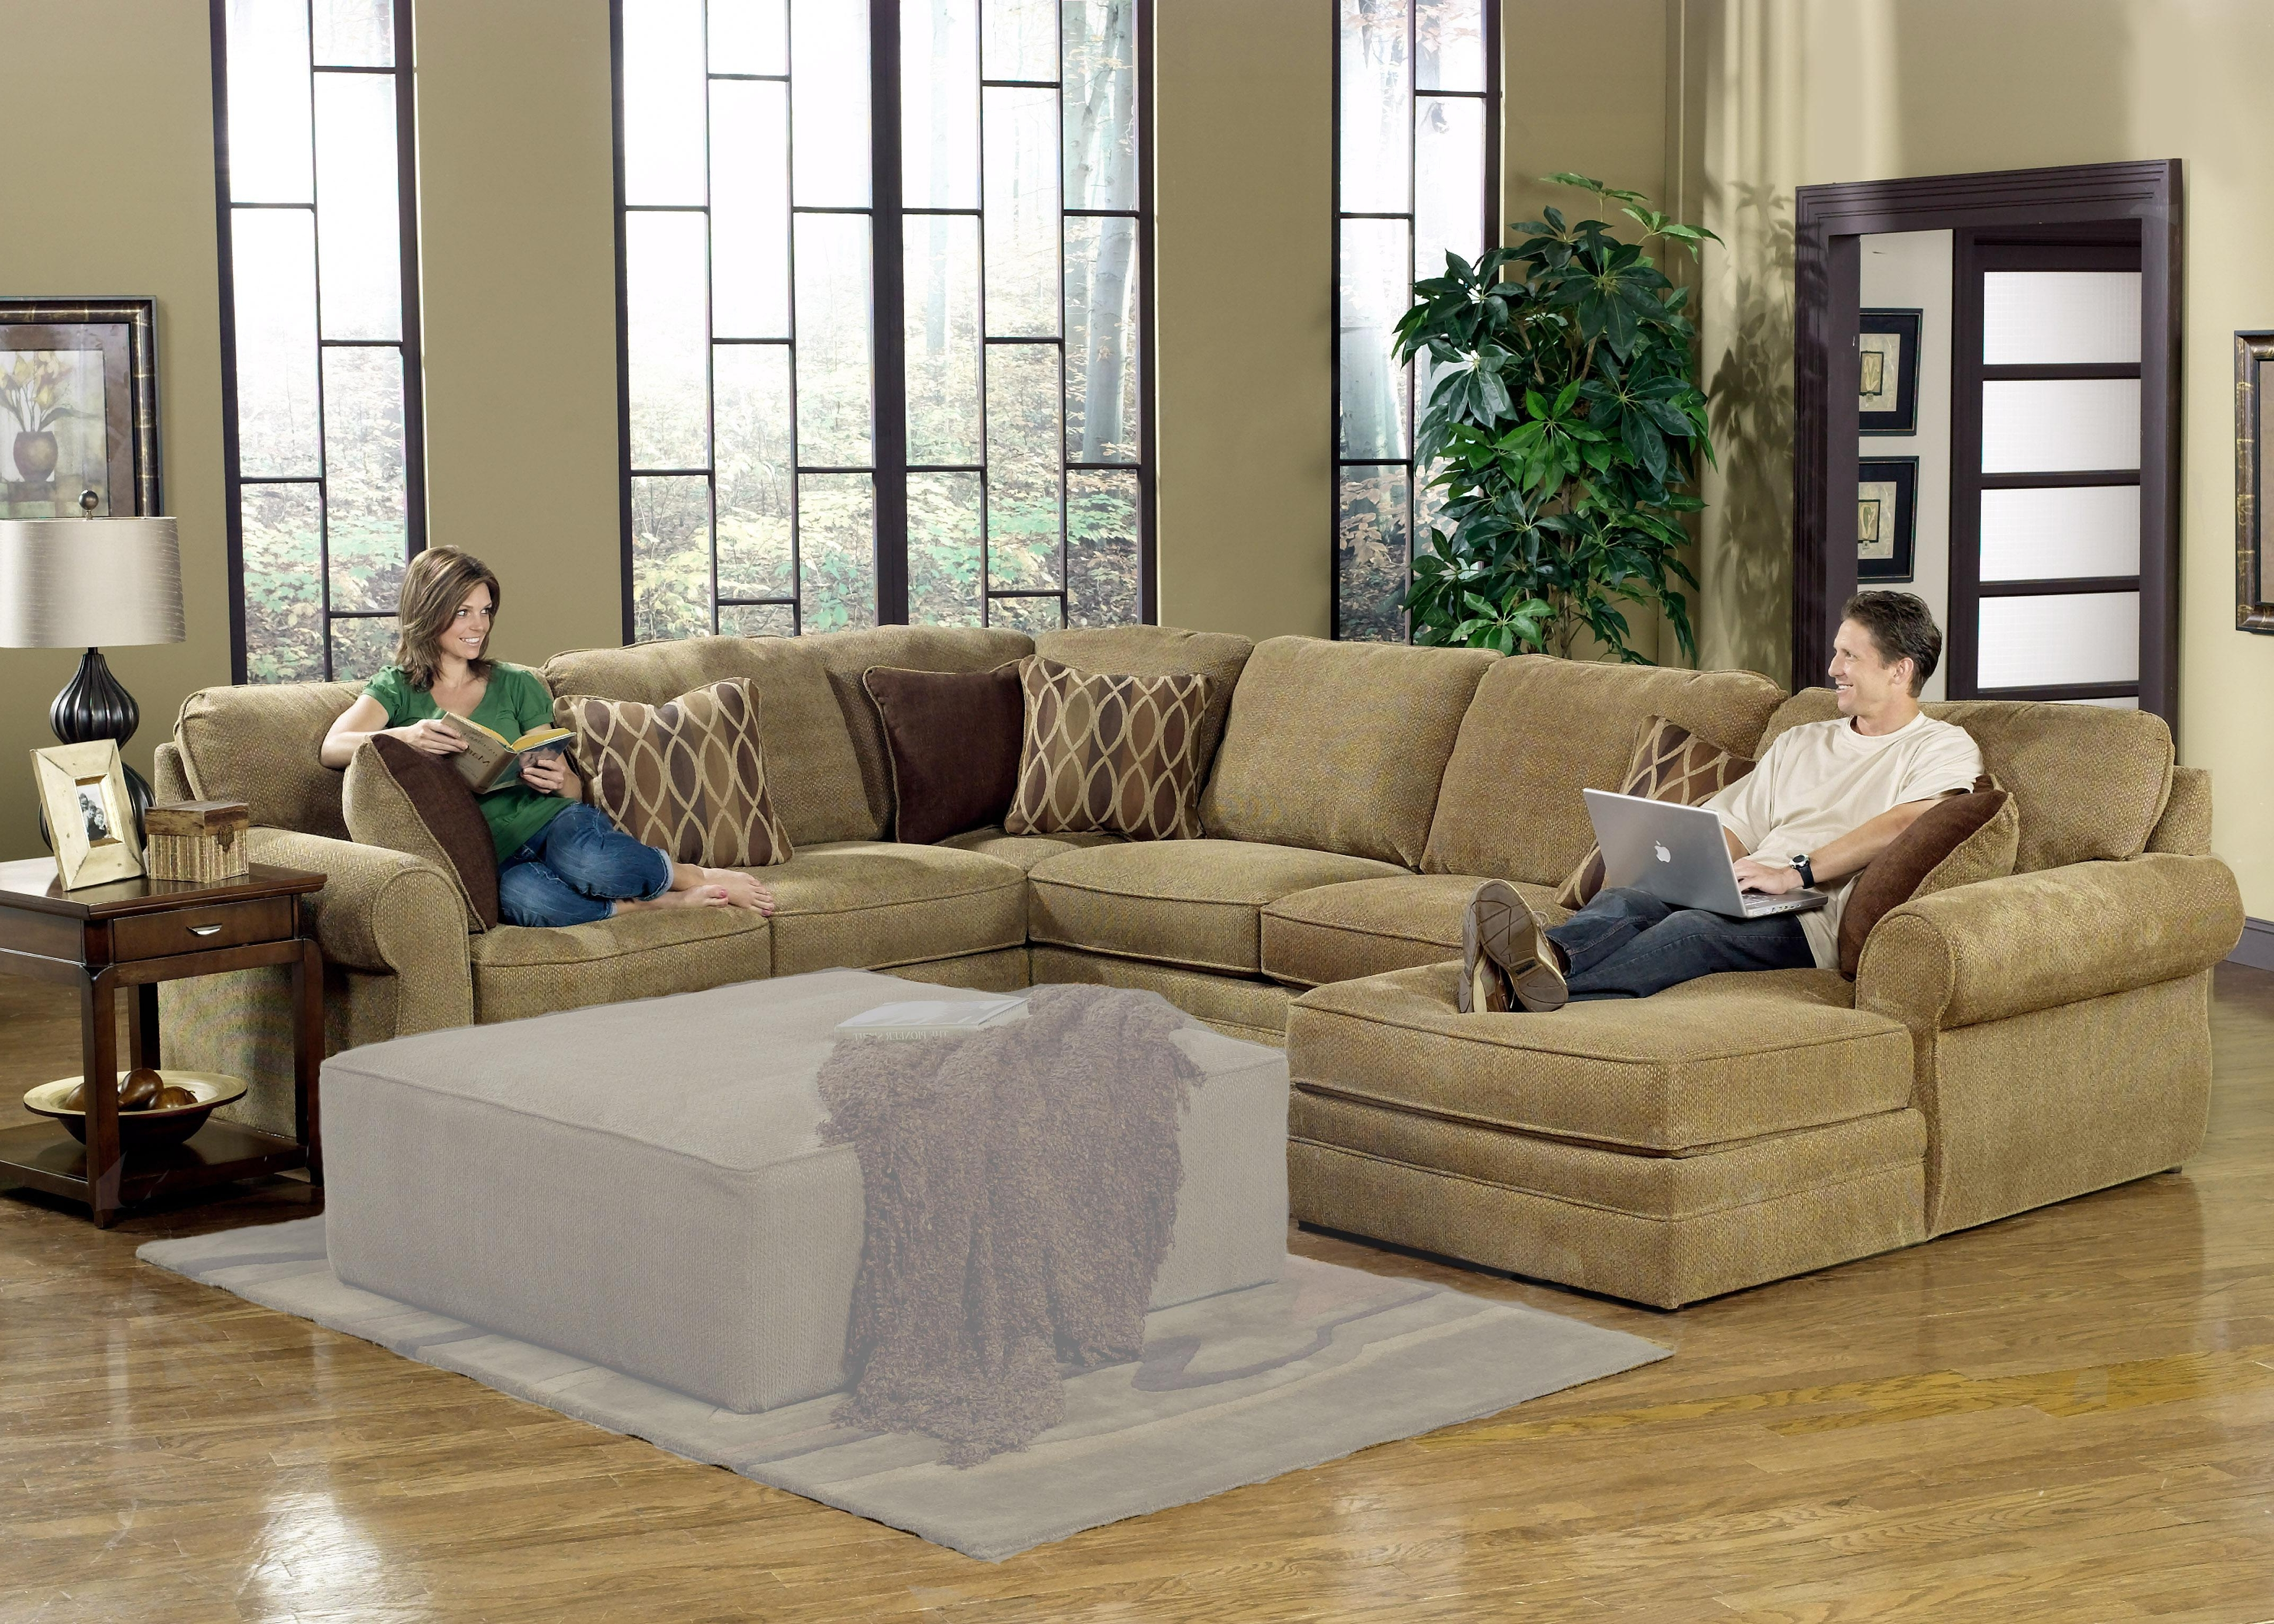 U Shaped Sectionals With Chaise in Current Fascinating U Shaped Sectional Sofas 123 Sofa Sectionals Canada